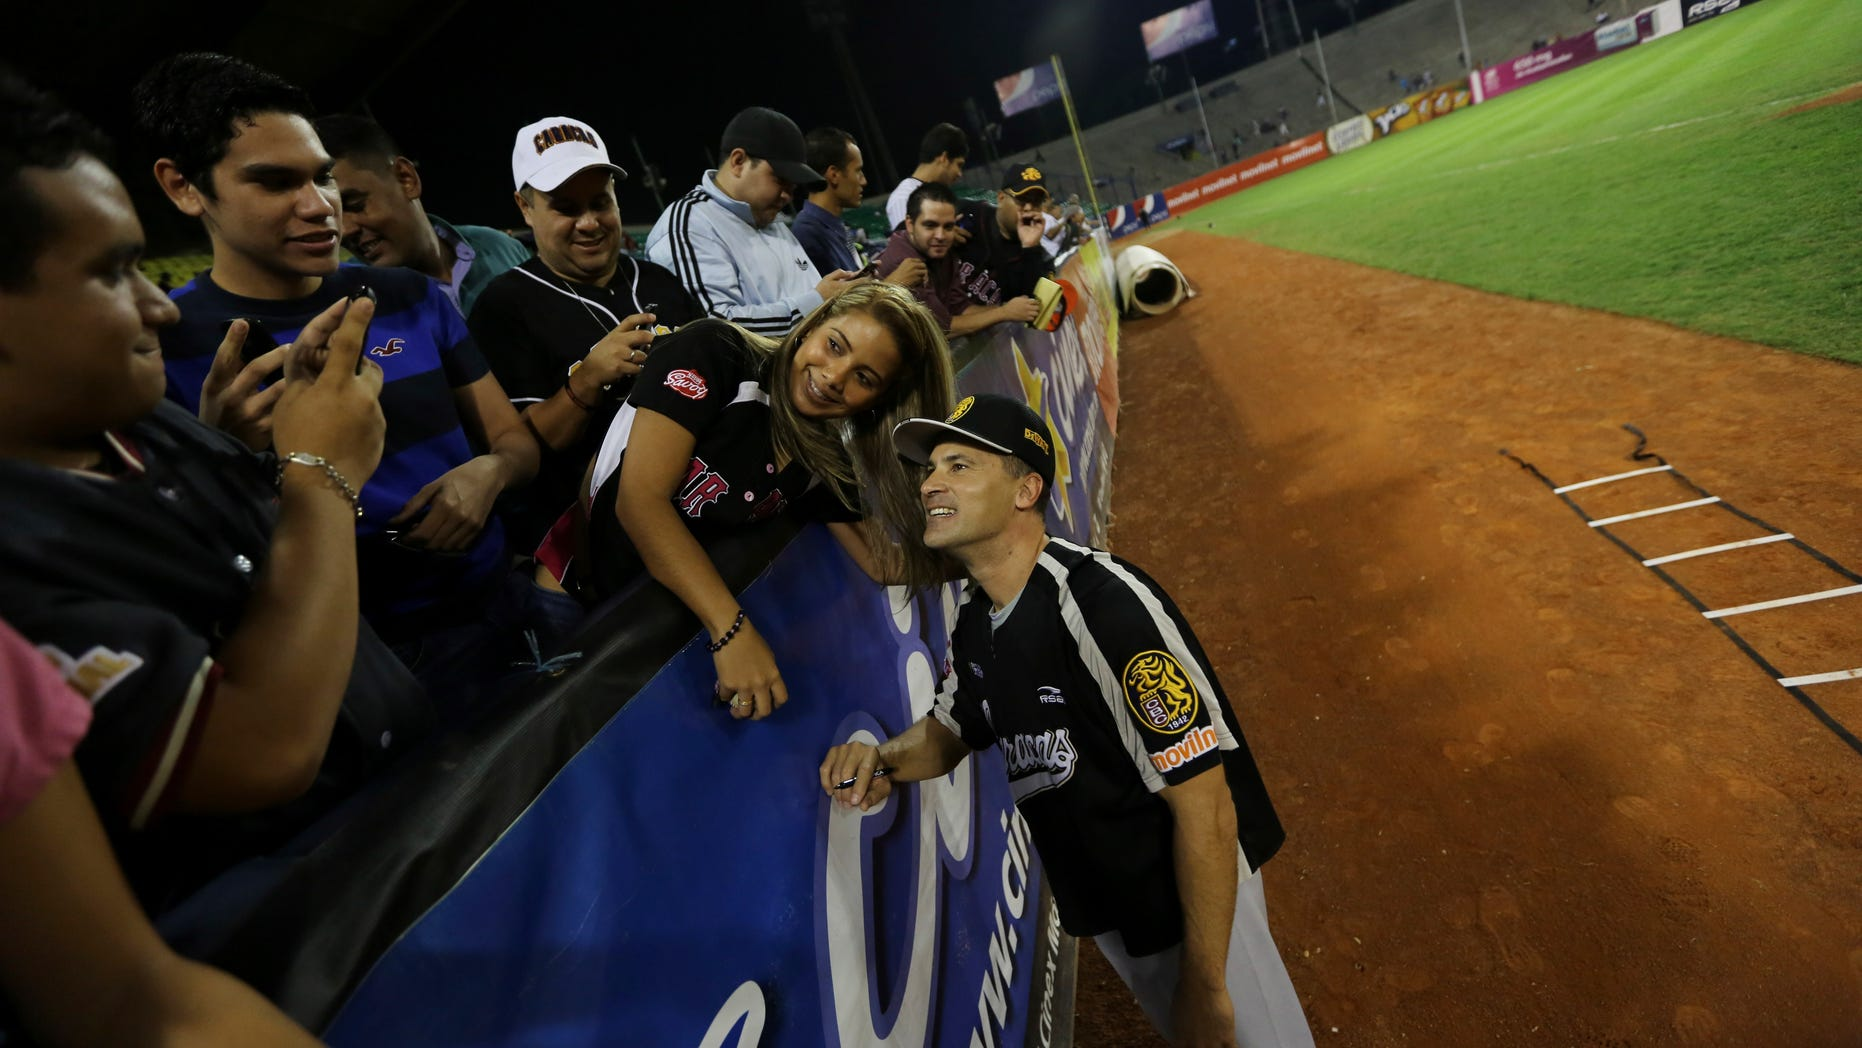 Omar Vizquel, former Cleveland Indians shortstop, poses for a photo with fans on Nov. 27, 2013 in Caracas, Venezuela.